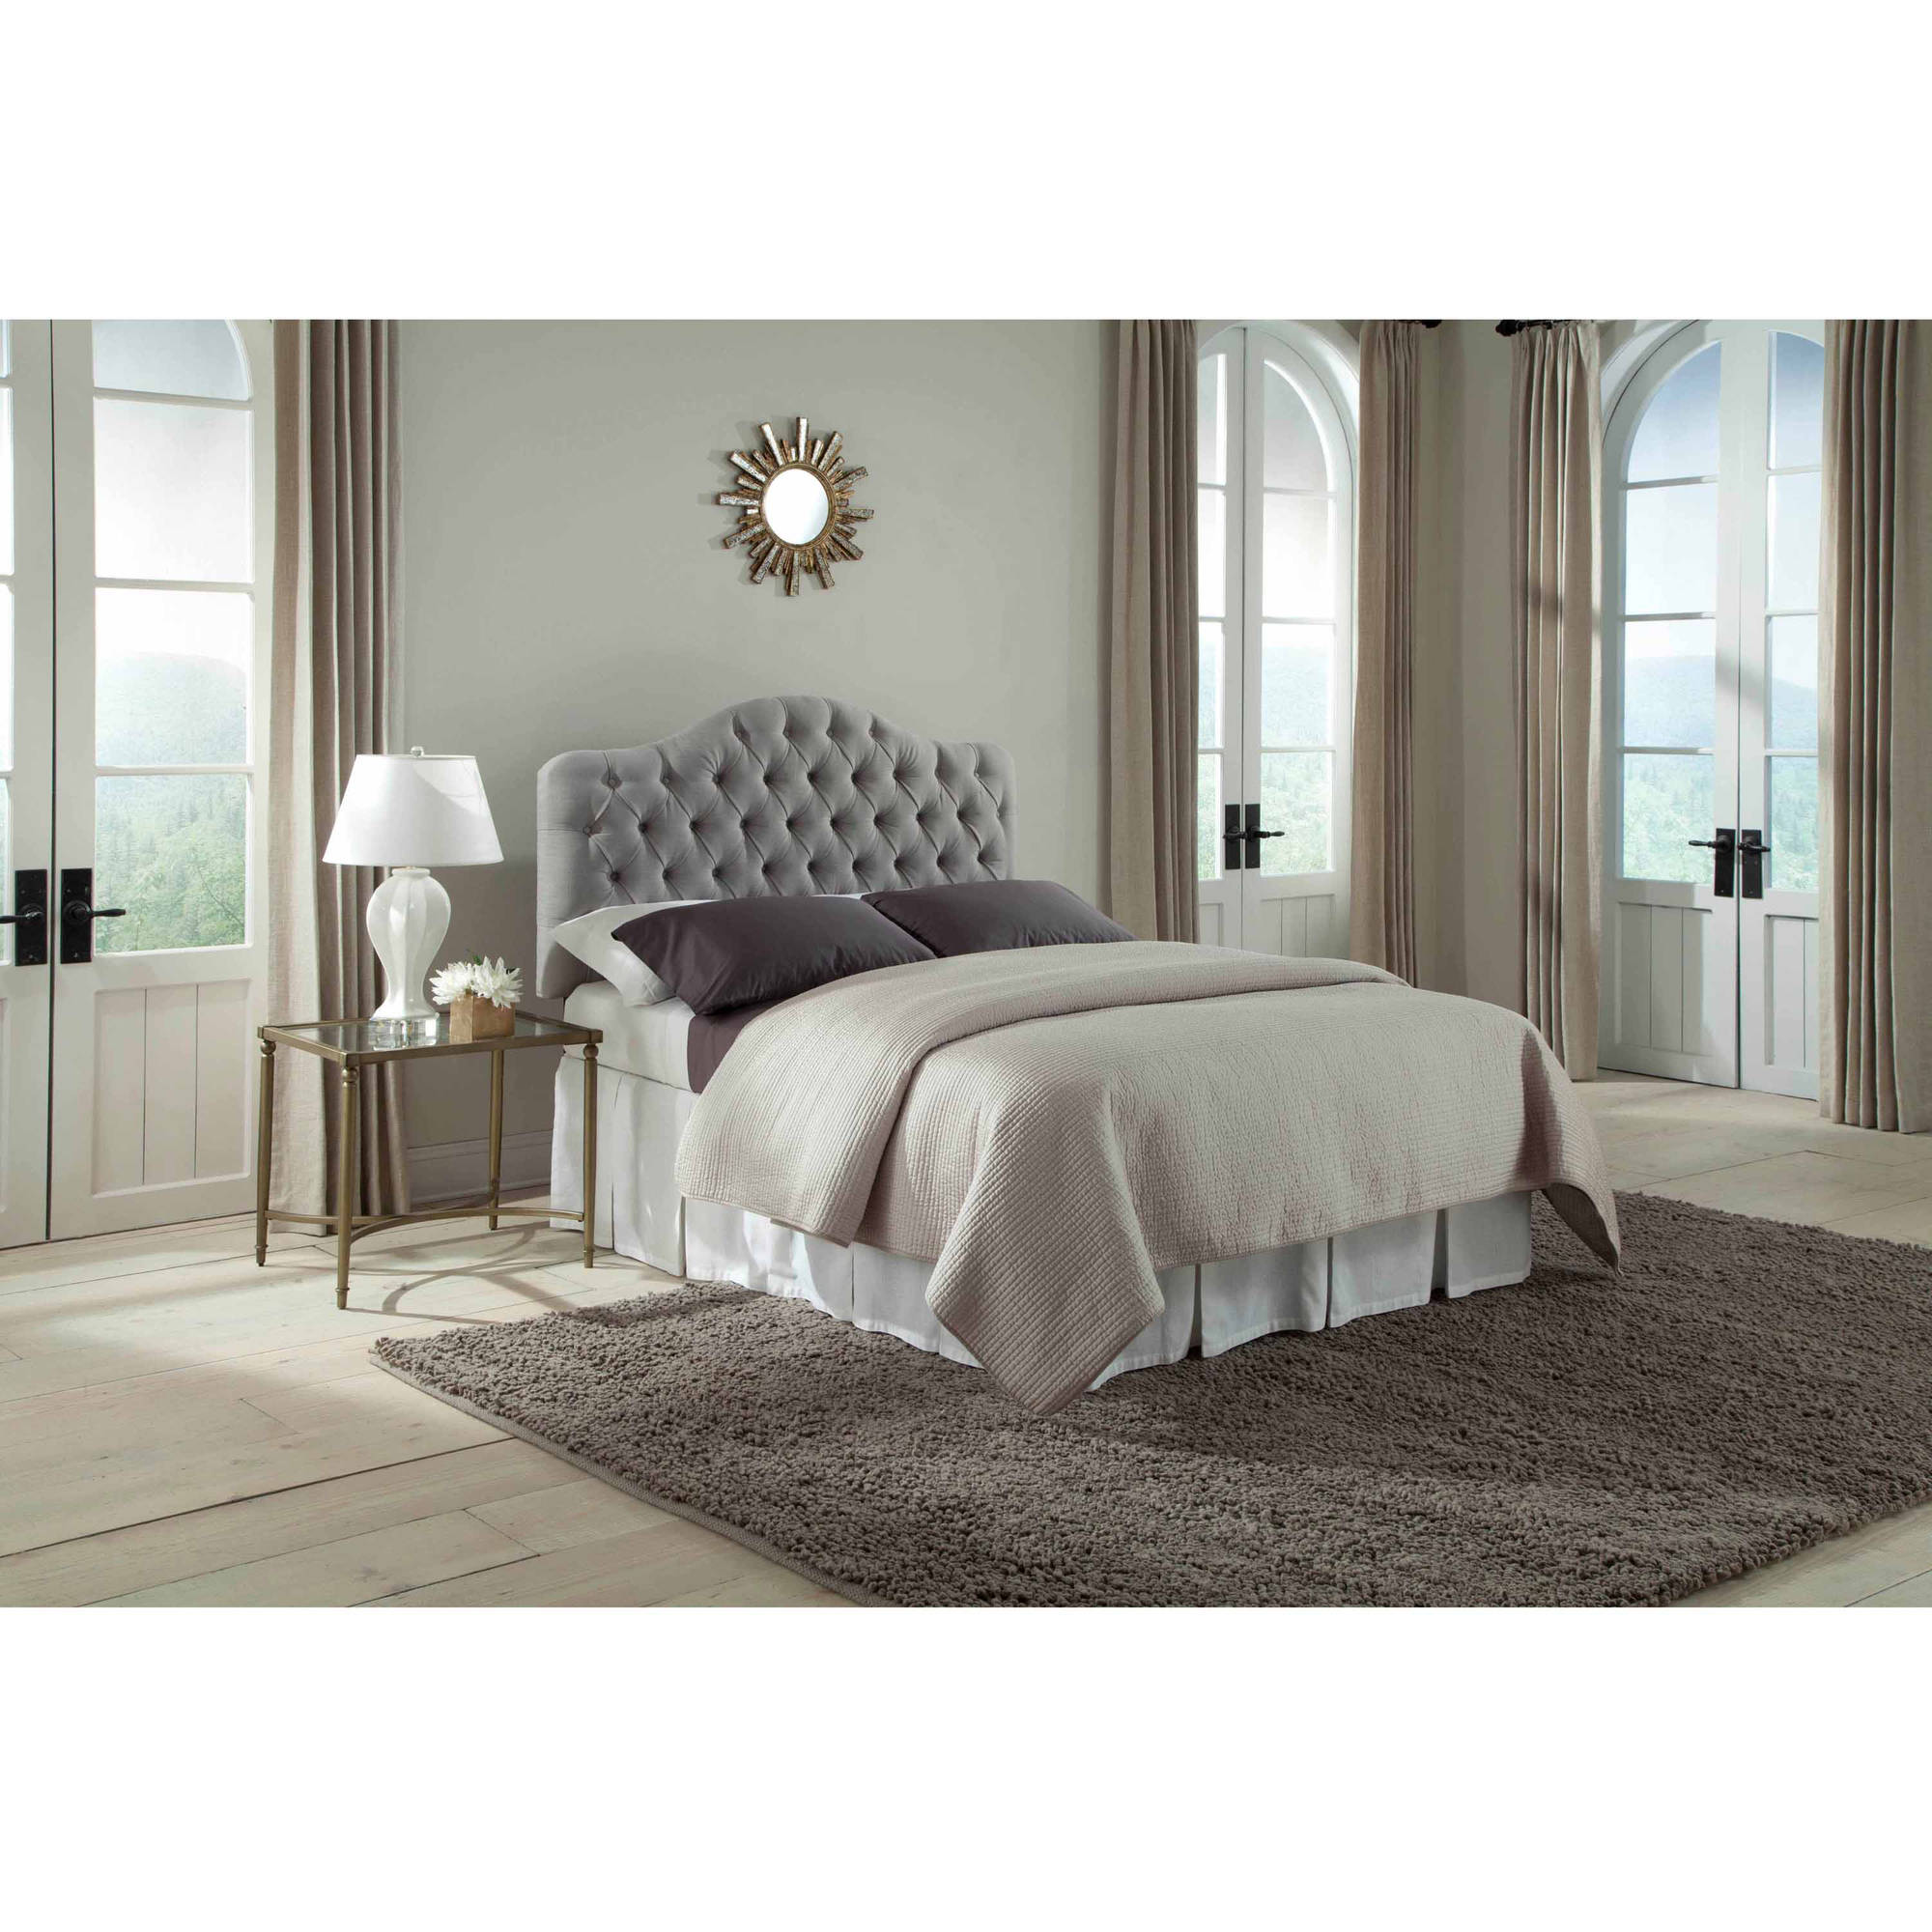 Fashion Bed Group by Leggett & Platt Martinique Headboard, Multiple Sizes & Colors by Fashion Bed Group